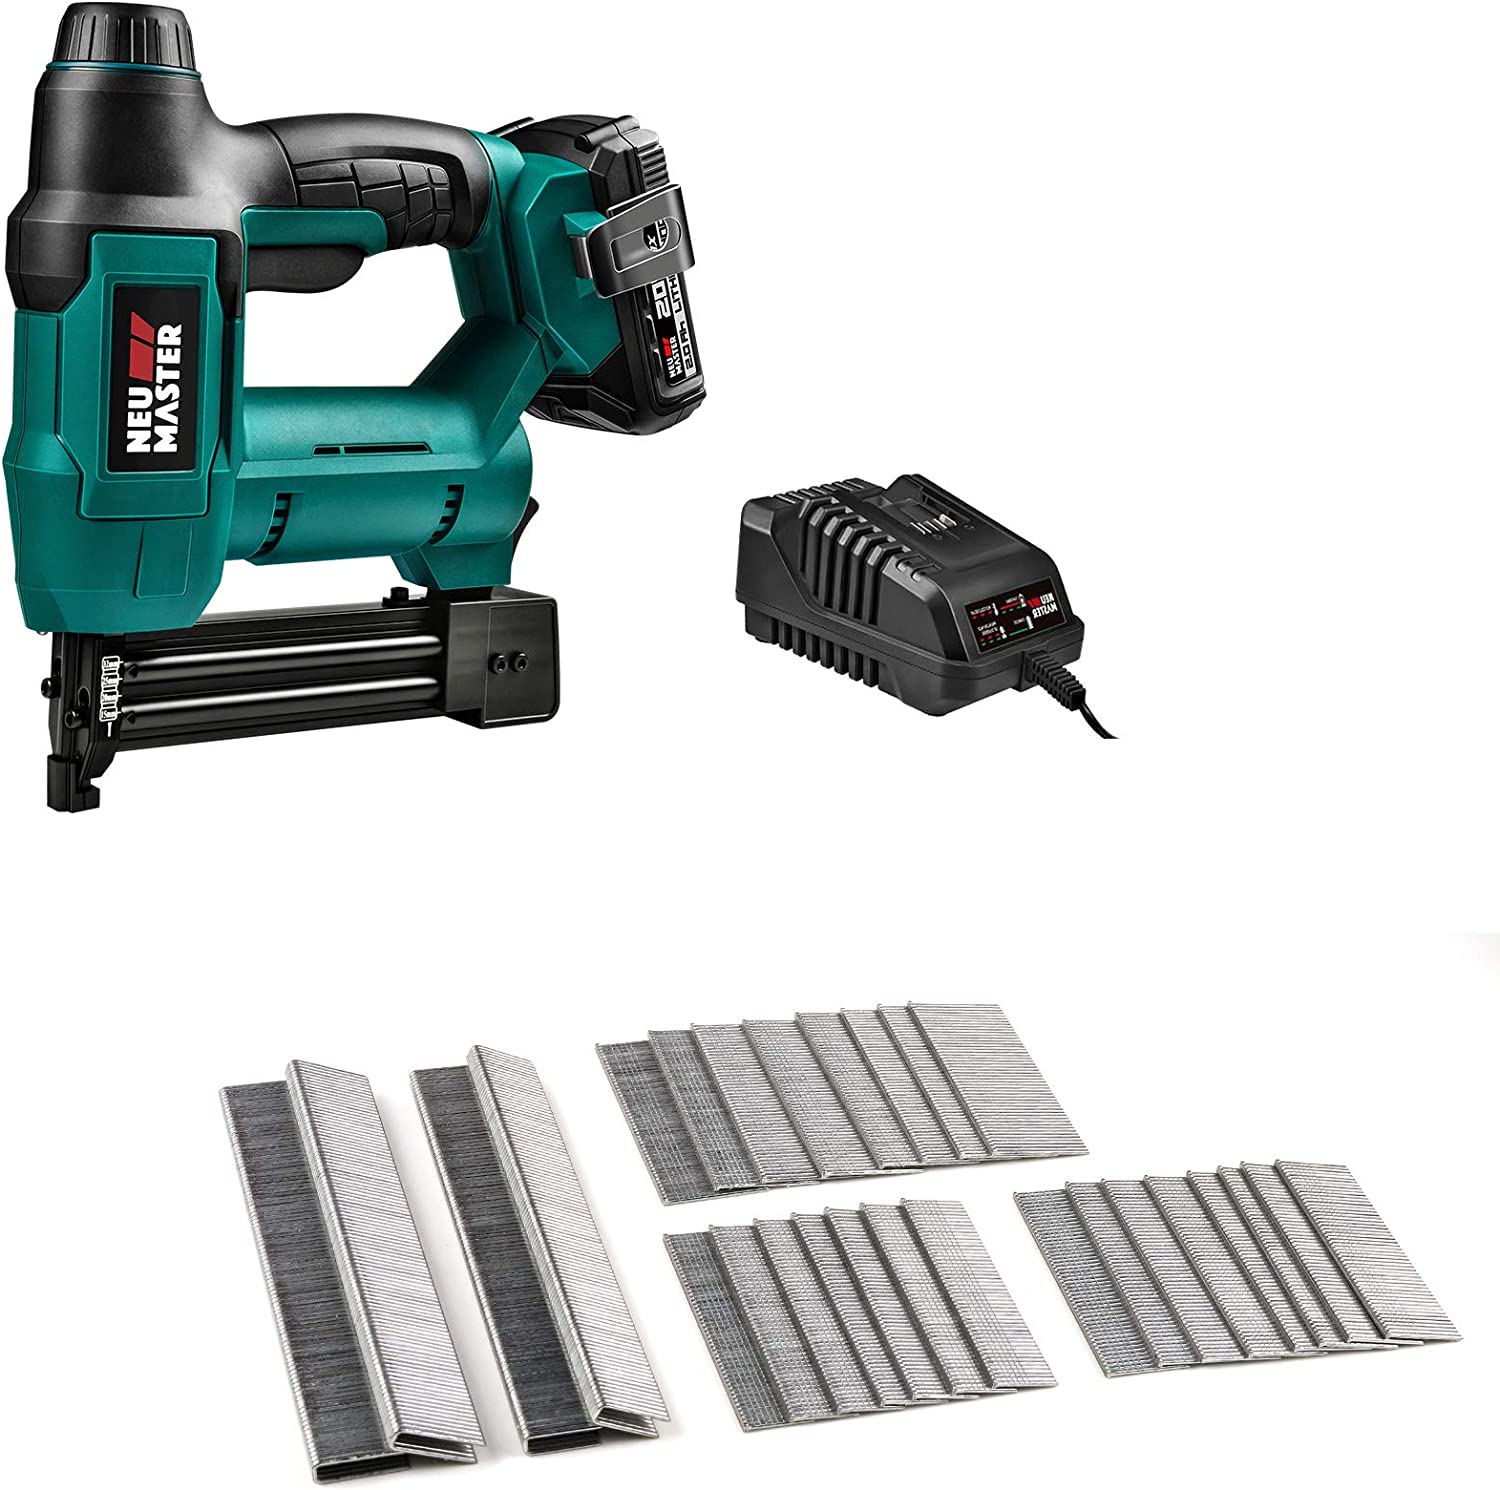 Cordless Brad Nailer (2.0Ah Battery and Charger Included) and 1600-Count NEU MASTER Heavy Duty Type600 Staples and 18GA Brad Nails